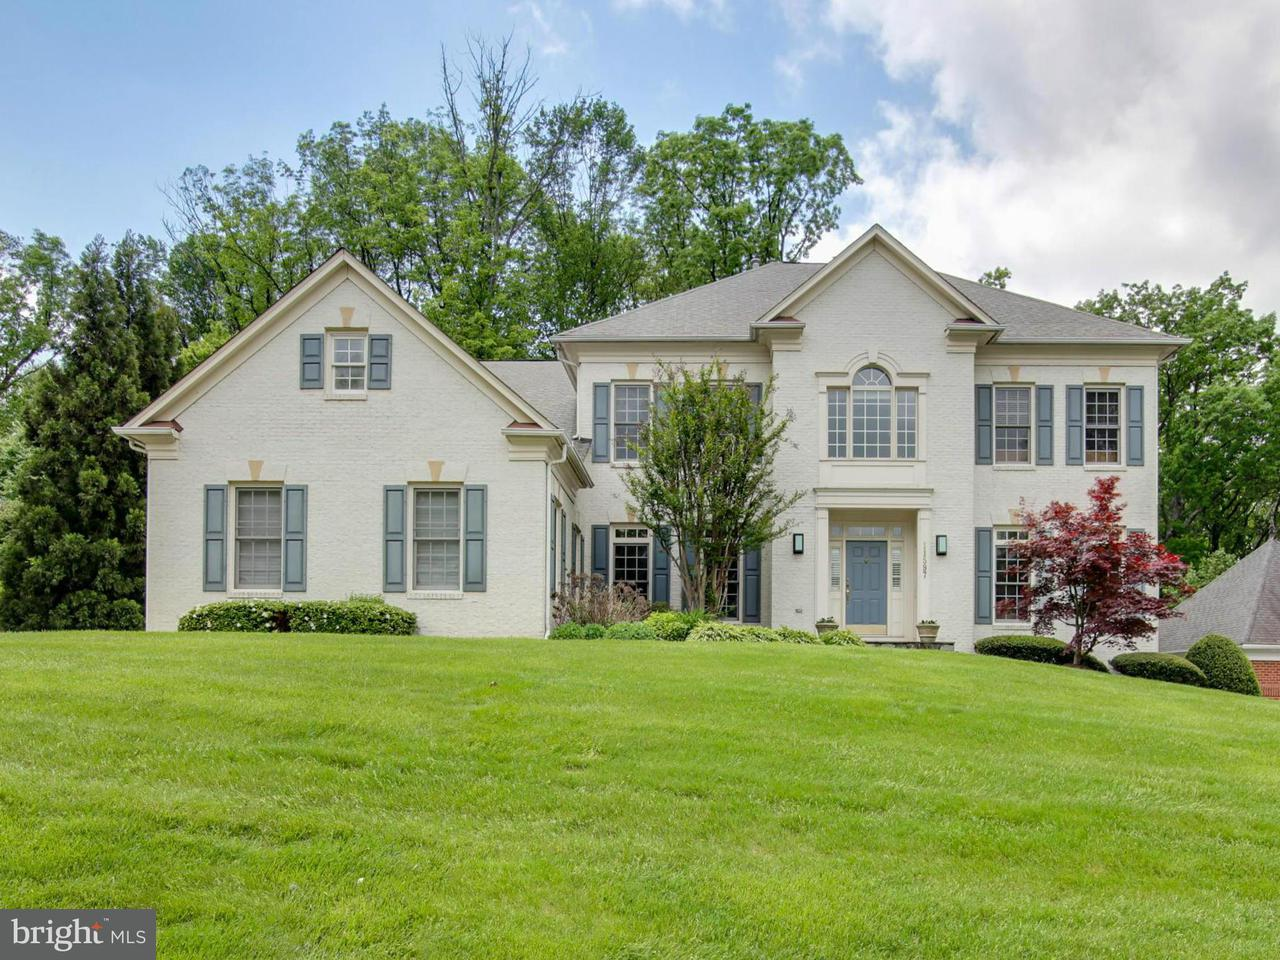 Single Family Home for Sale at 11597 CEDAR CHASE Road 11597 CEDAR CHASE Road Herndon, Virginia 20170 United States